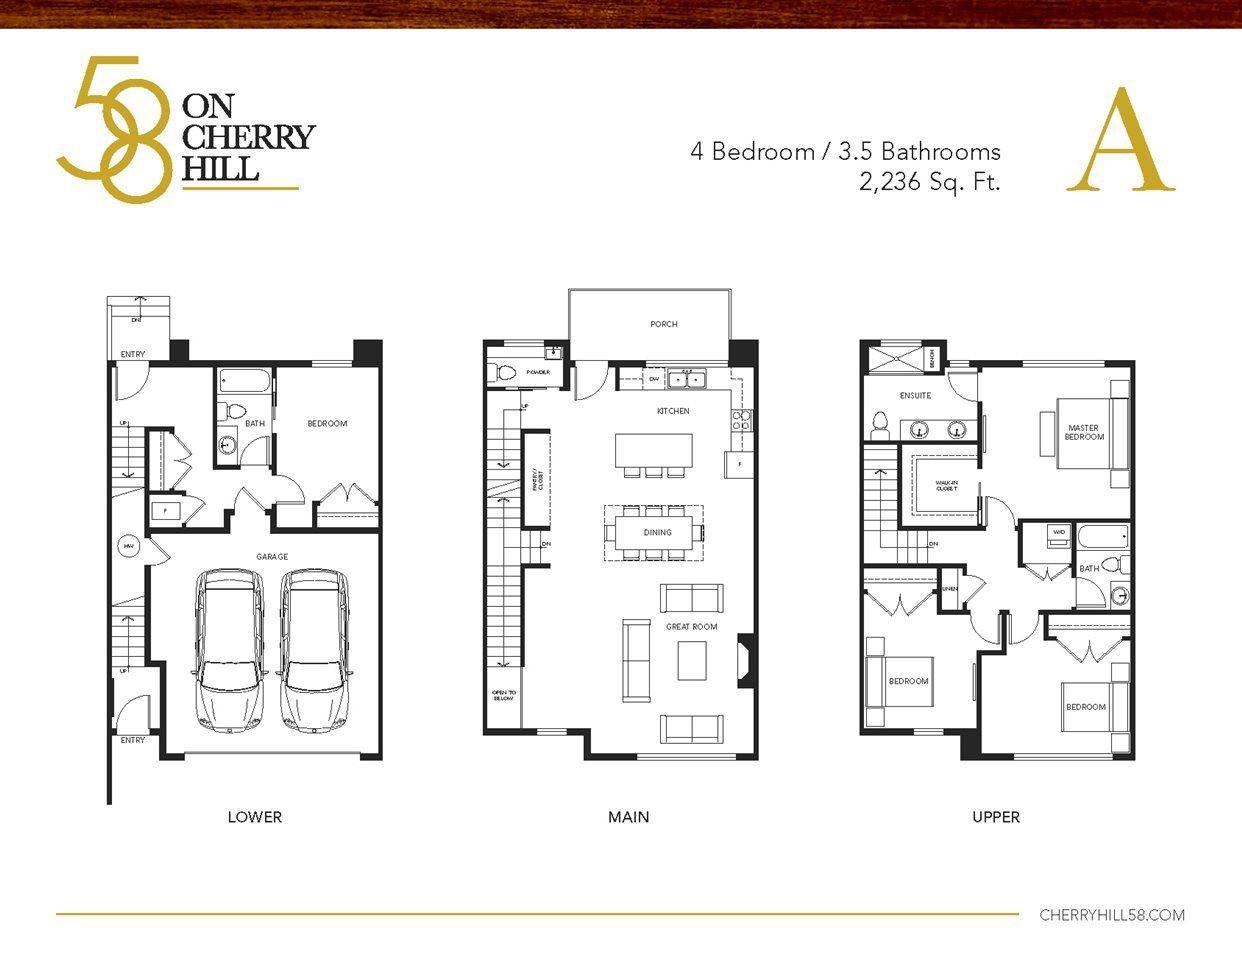 """Photo 8: Photos: 17 33209 CHERRY Avenue in Mission: Mission BC Townhouse for sale in """"58 on CHERRY HILL"""" : MLS®# R2262600"""